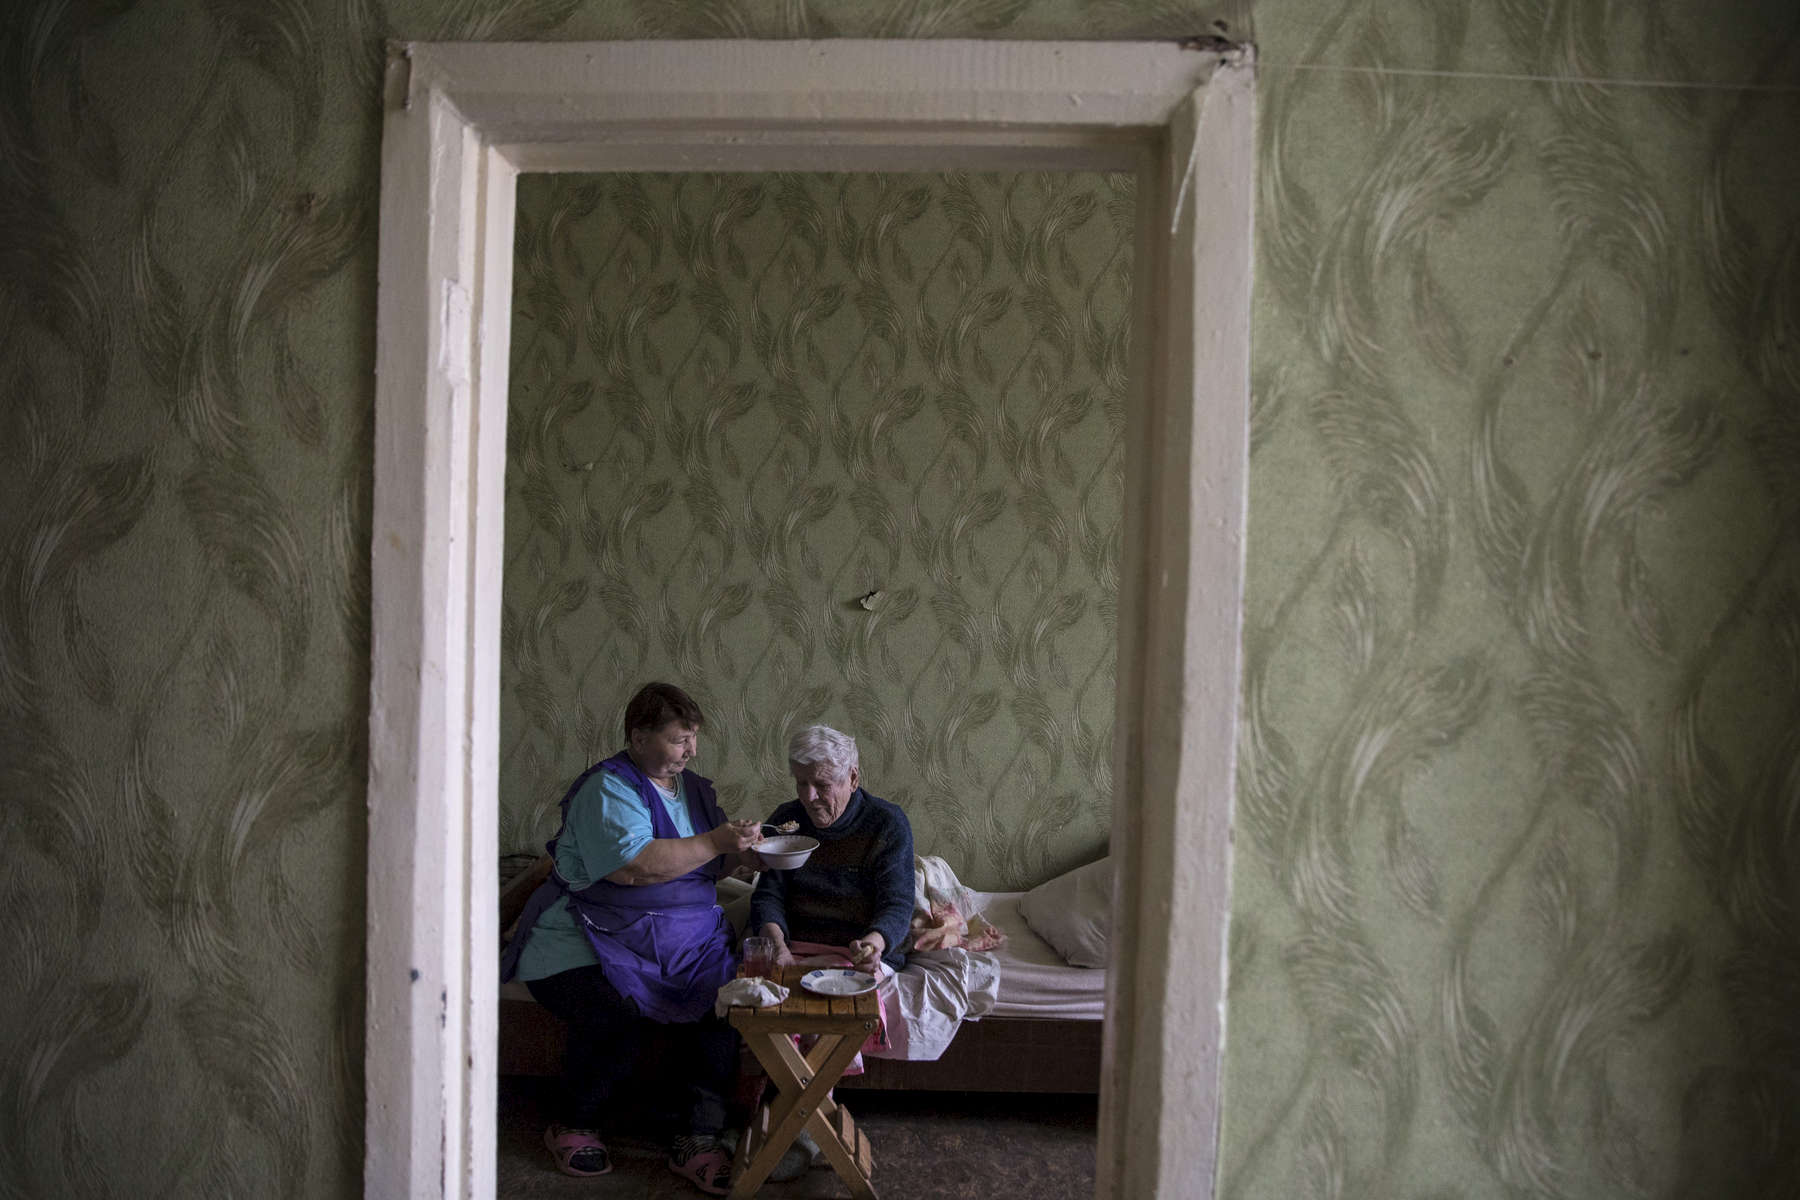 Druzhkovka Nursing home - Donetsk region:An elderly woman gets spoon fed her lunch by staff. The nursing home facility takes care of many elderly who are left behind, and poverty stricken due to the war. After more than four years of war the armed conflict in eastern Ukraine has a human toll that is staggering. The war has displaced more than 1.6 million with over 2,500 civilians killed and 9,000 injured. Some 200,000 people live under constant fear of shelling every day, with nearly a third of the 3.4 million people in need of humanitarian assistance over 60 years of age. Ukraine has the highest proportion of elderly affected by war in the world.